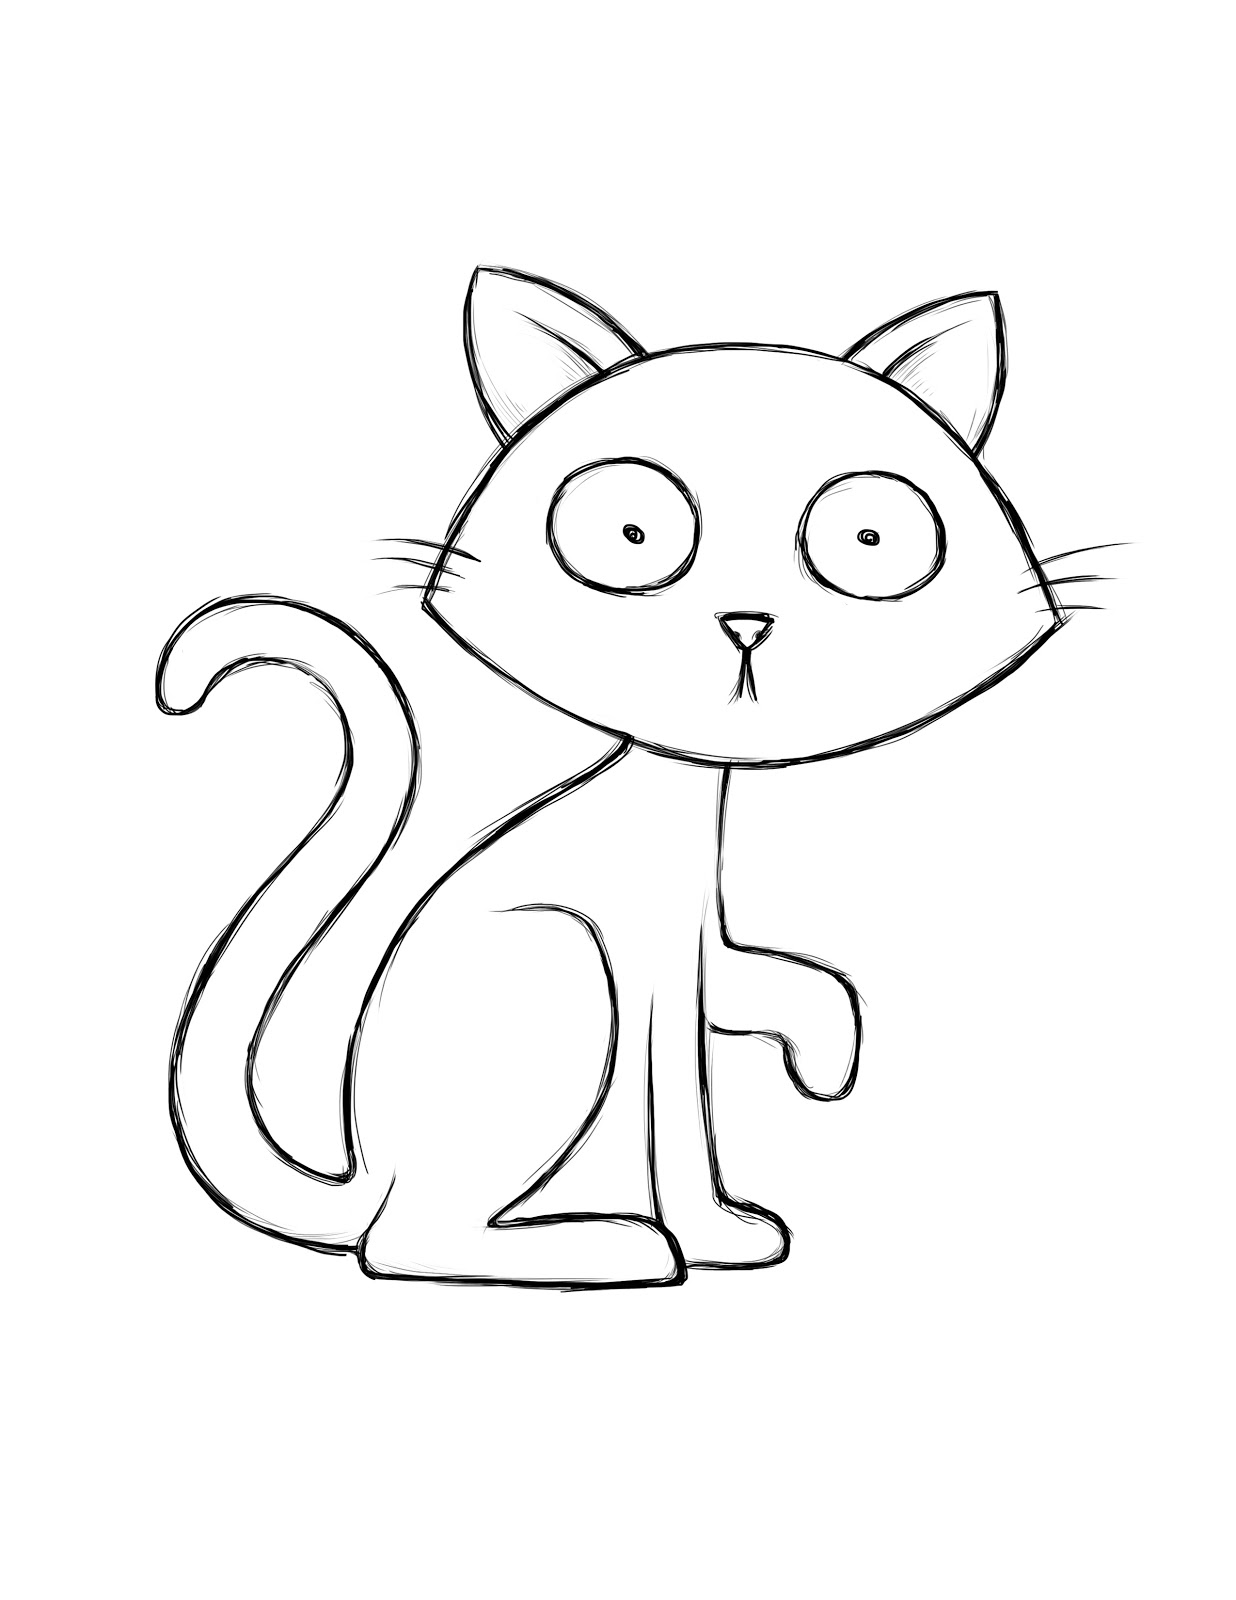 1236x1600 Cat Coloring Book Pages